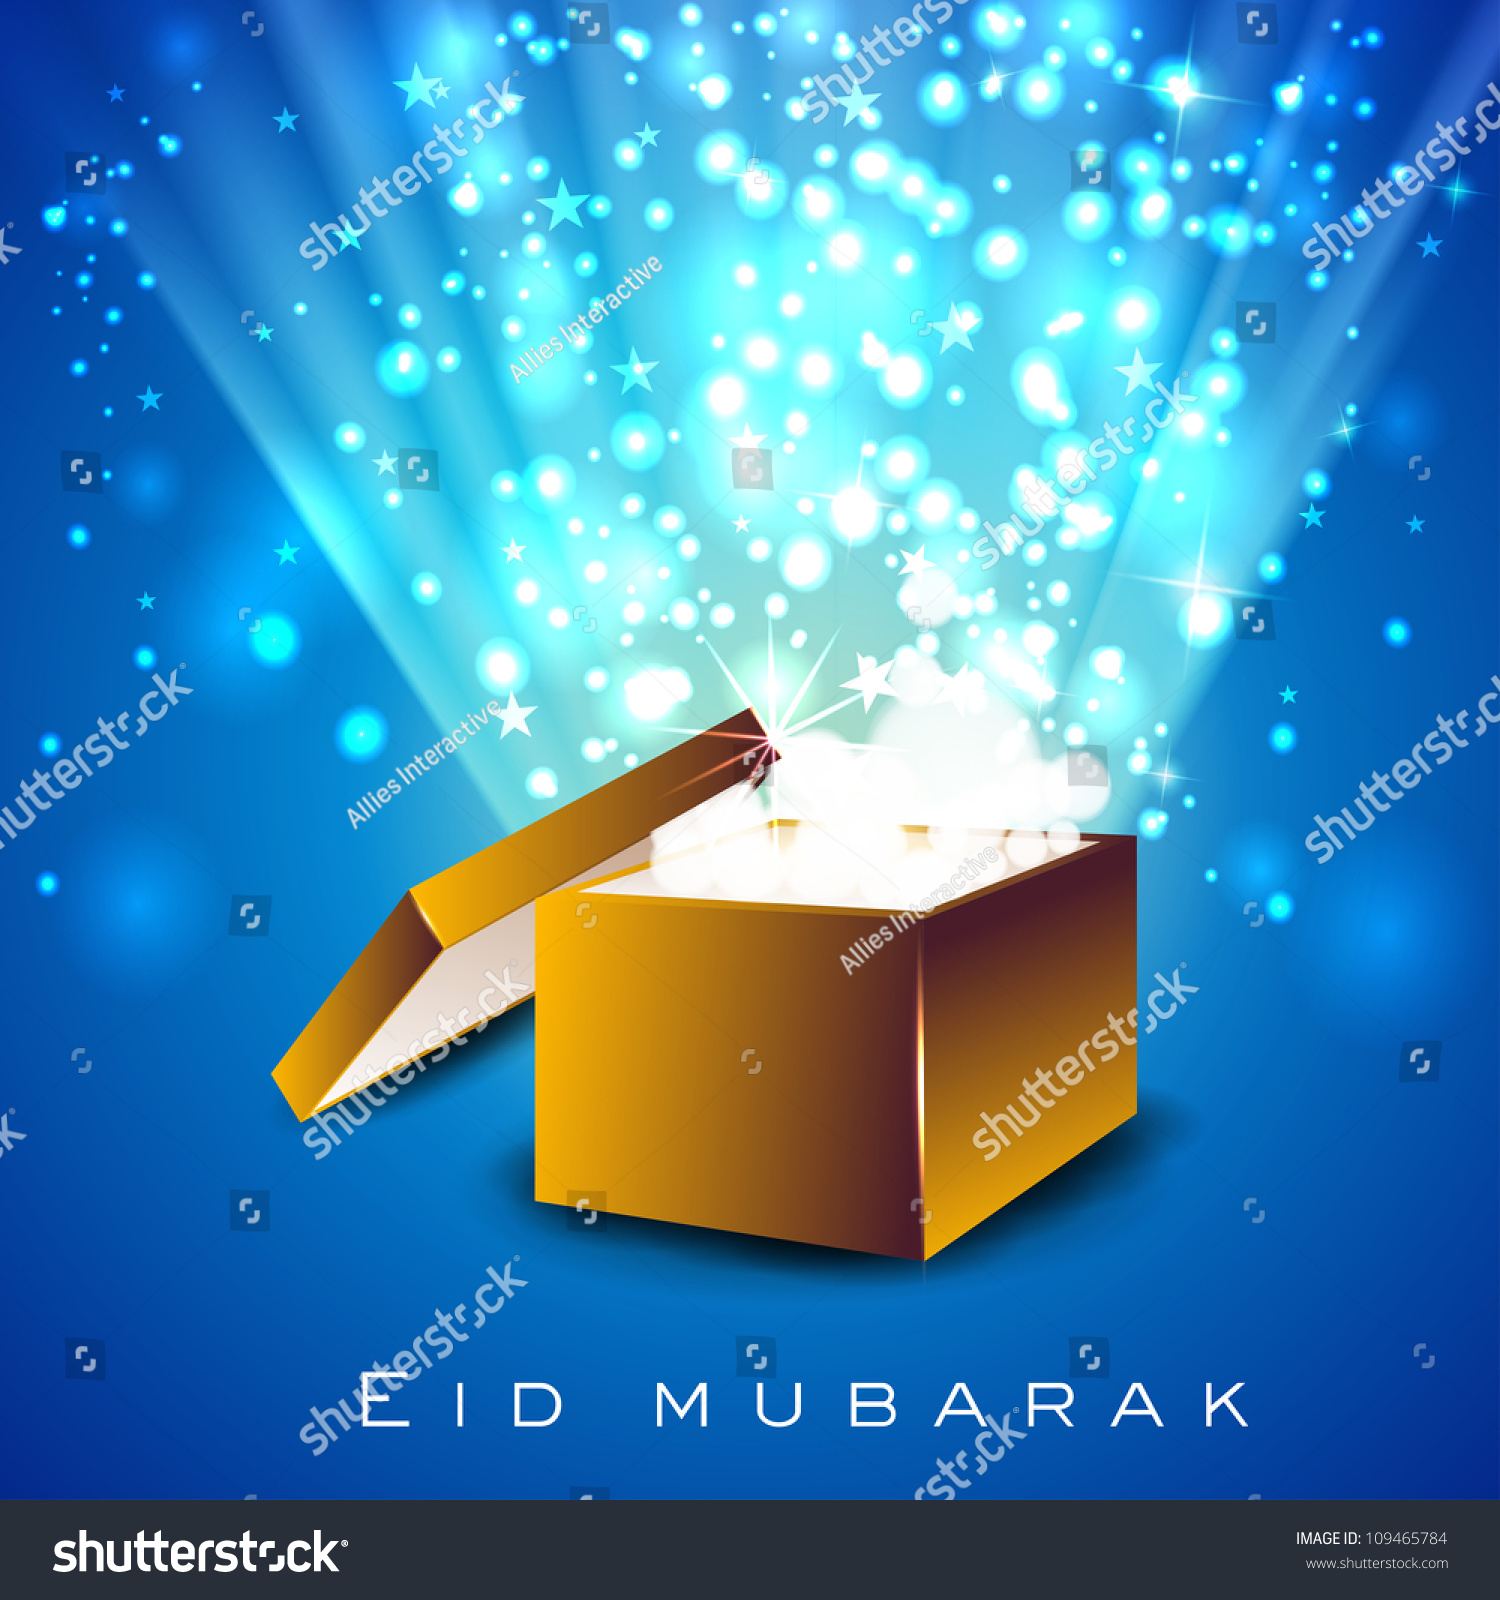 Beautiful greeting card eid mubarak gift stock vector 109465784 beautiful greeting card of eid mubarak with gift box and space for your message eps kristyandbryce Images